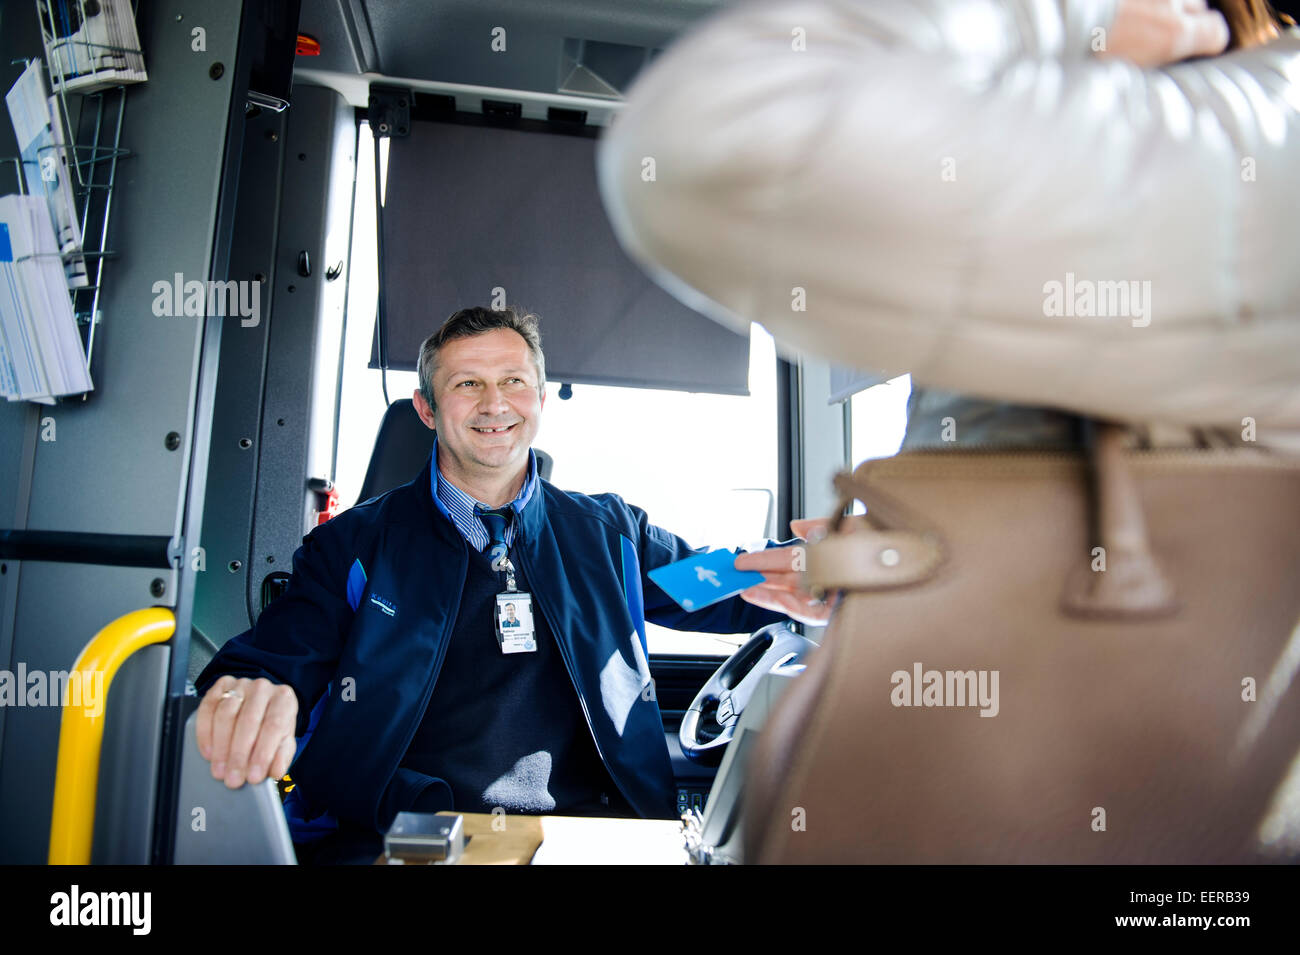 smiling bus driver with passenger - Stock Image